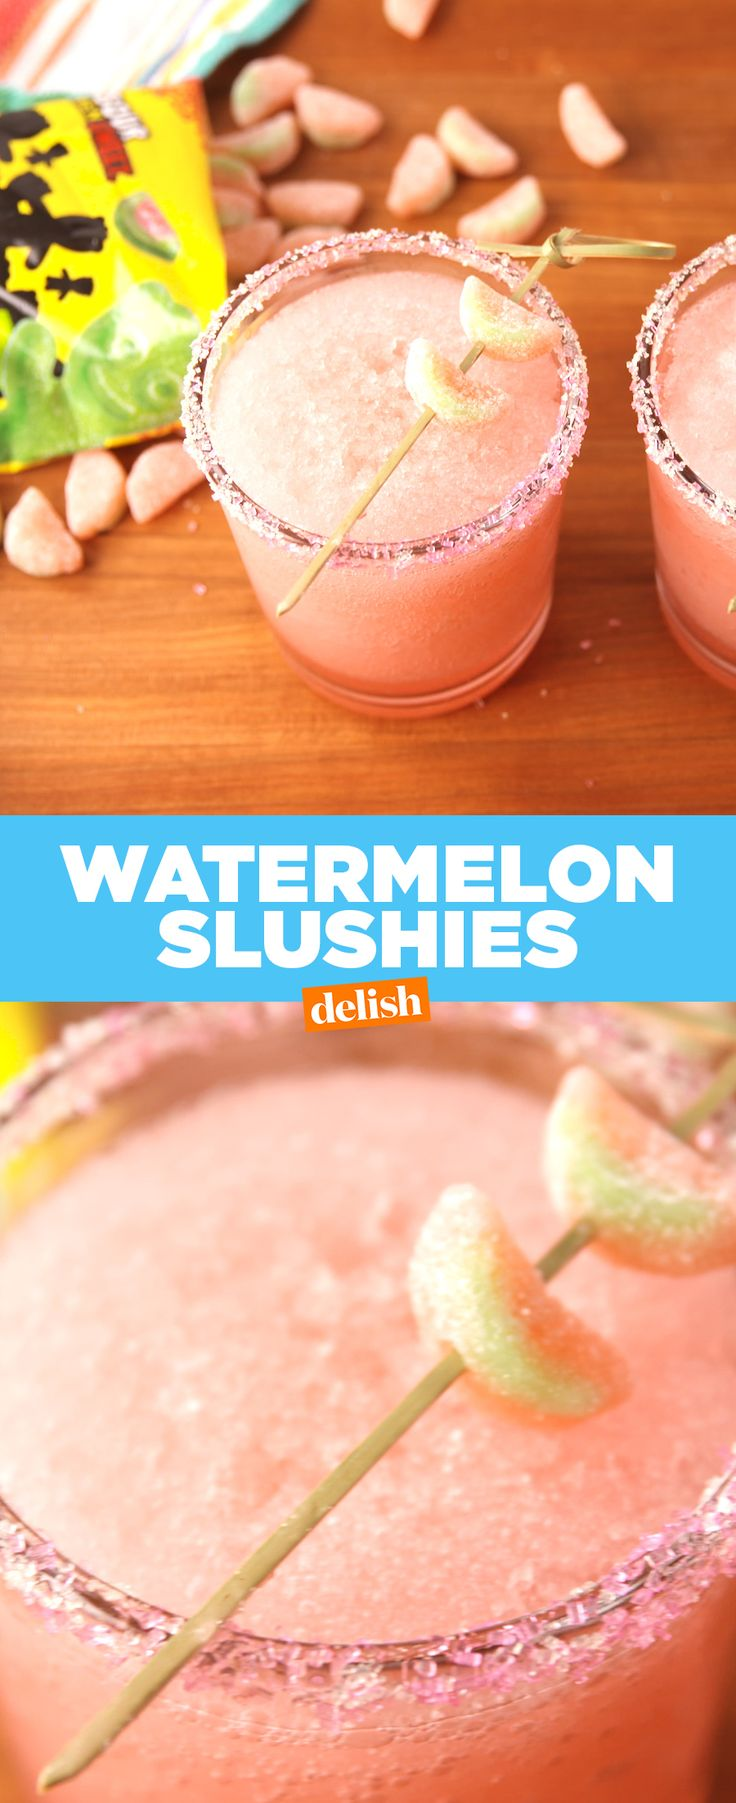 Sour Patch Watermelon fans, your favorite candy just got boozy. Get the recipe from Delish.com.